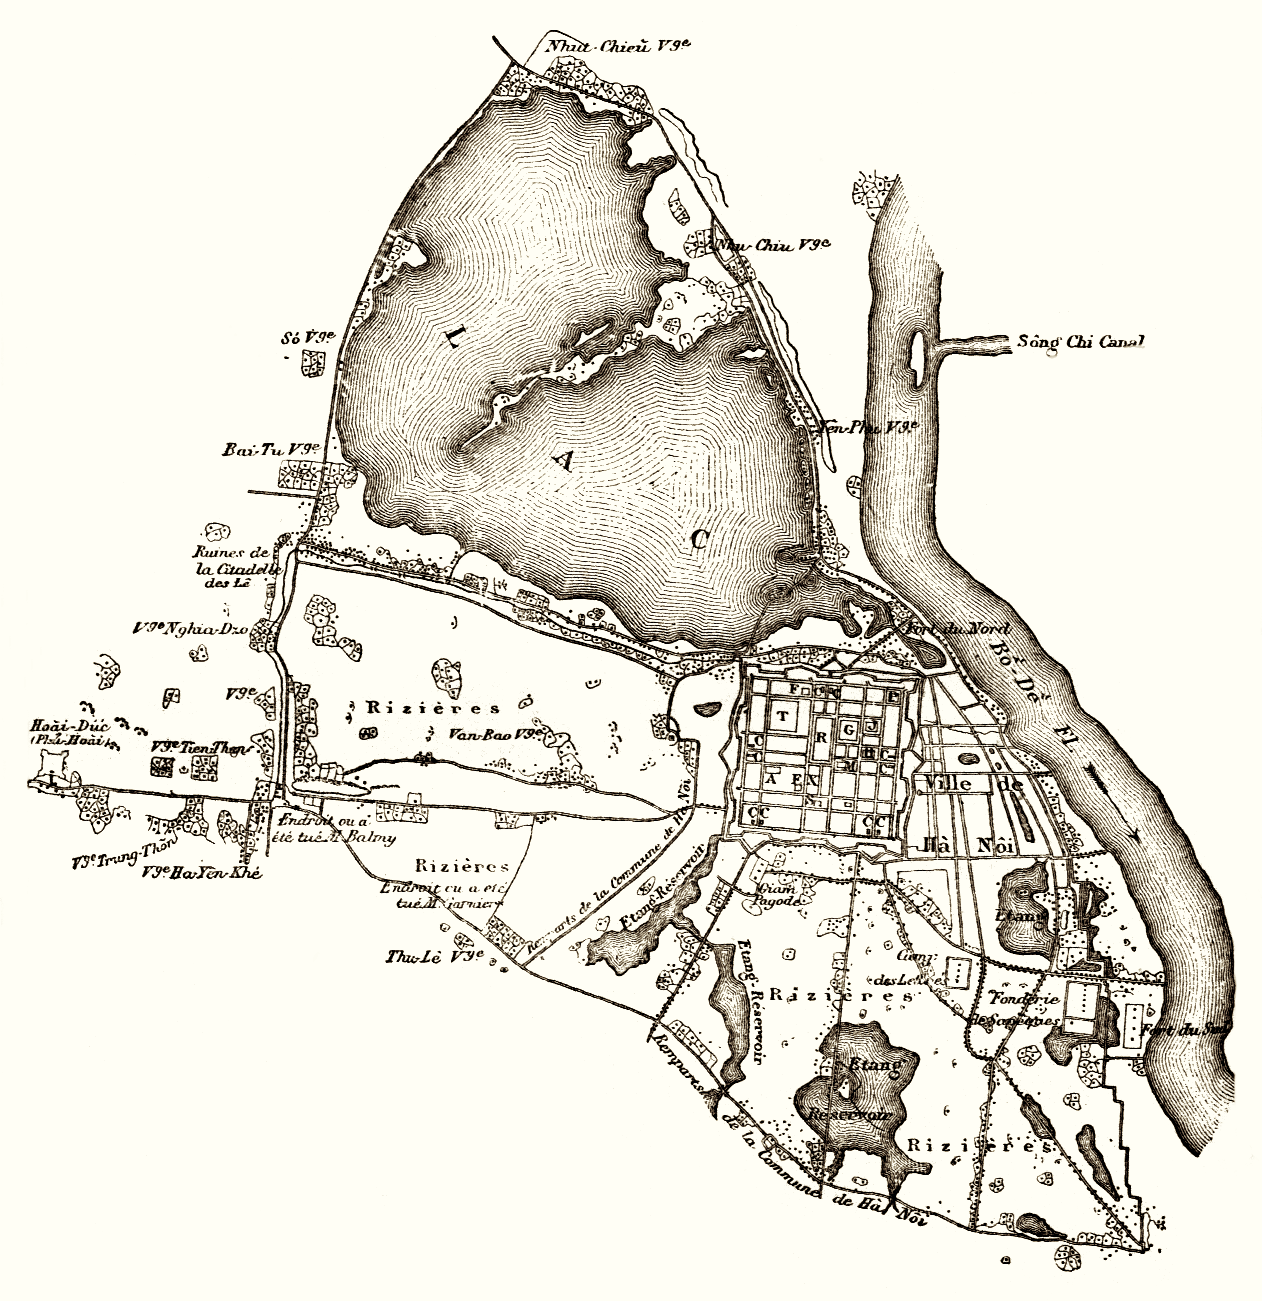 File:Map of Hanoi c. 1873.png - Wikimedia Commons